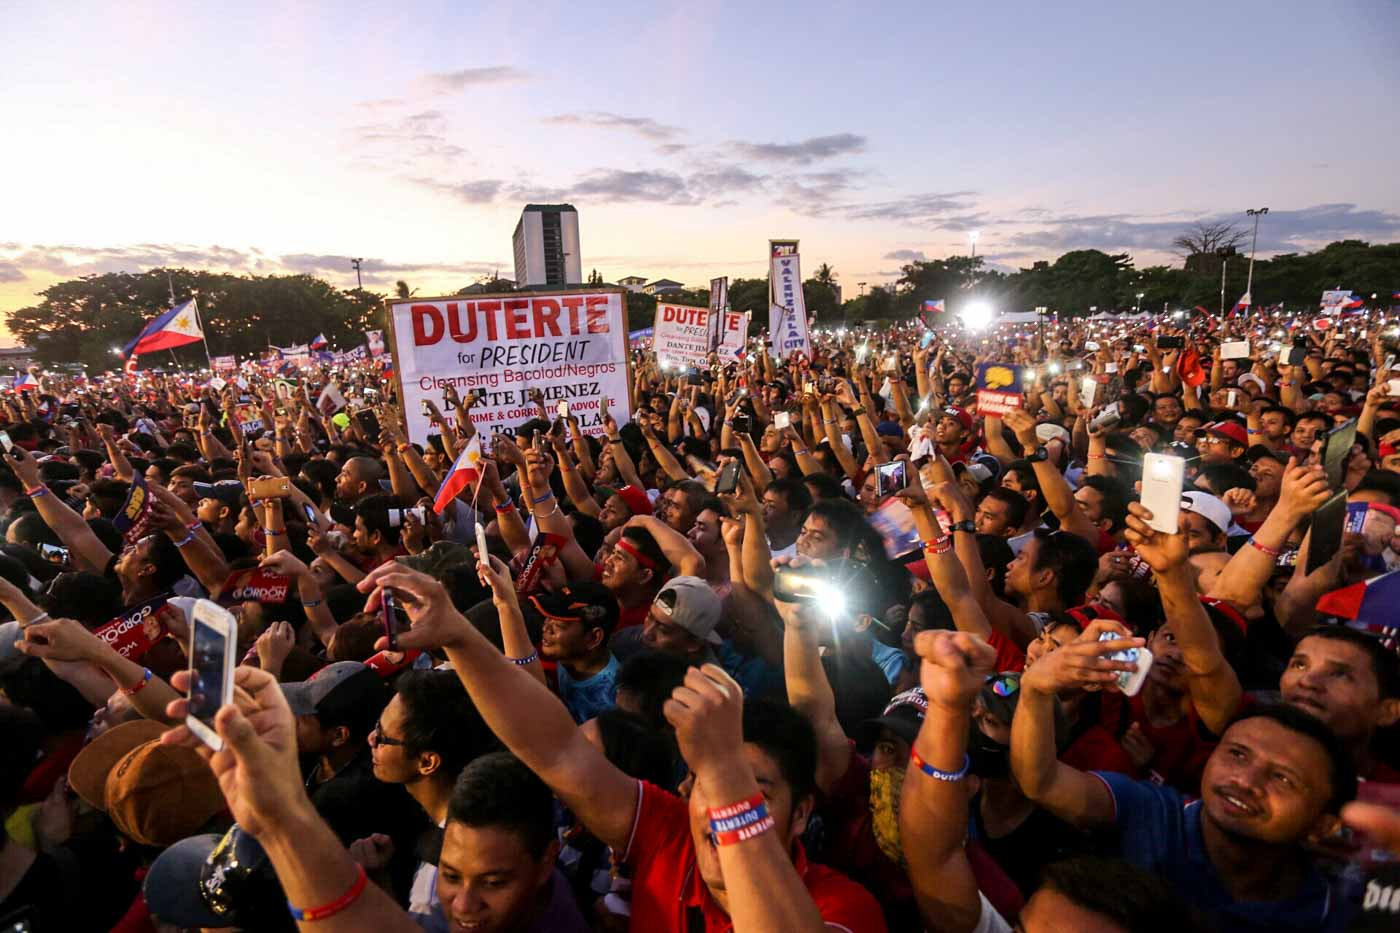 FESTIVE ATMOSPHERE. The mammoth crowd at the Duterte-Cayetano miting de avance shows love for the candidates.  Photo by Manman Dejeto/Rappler